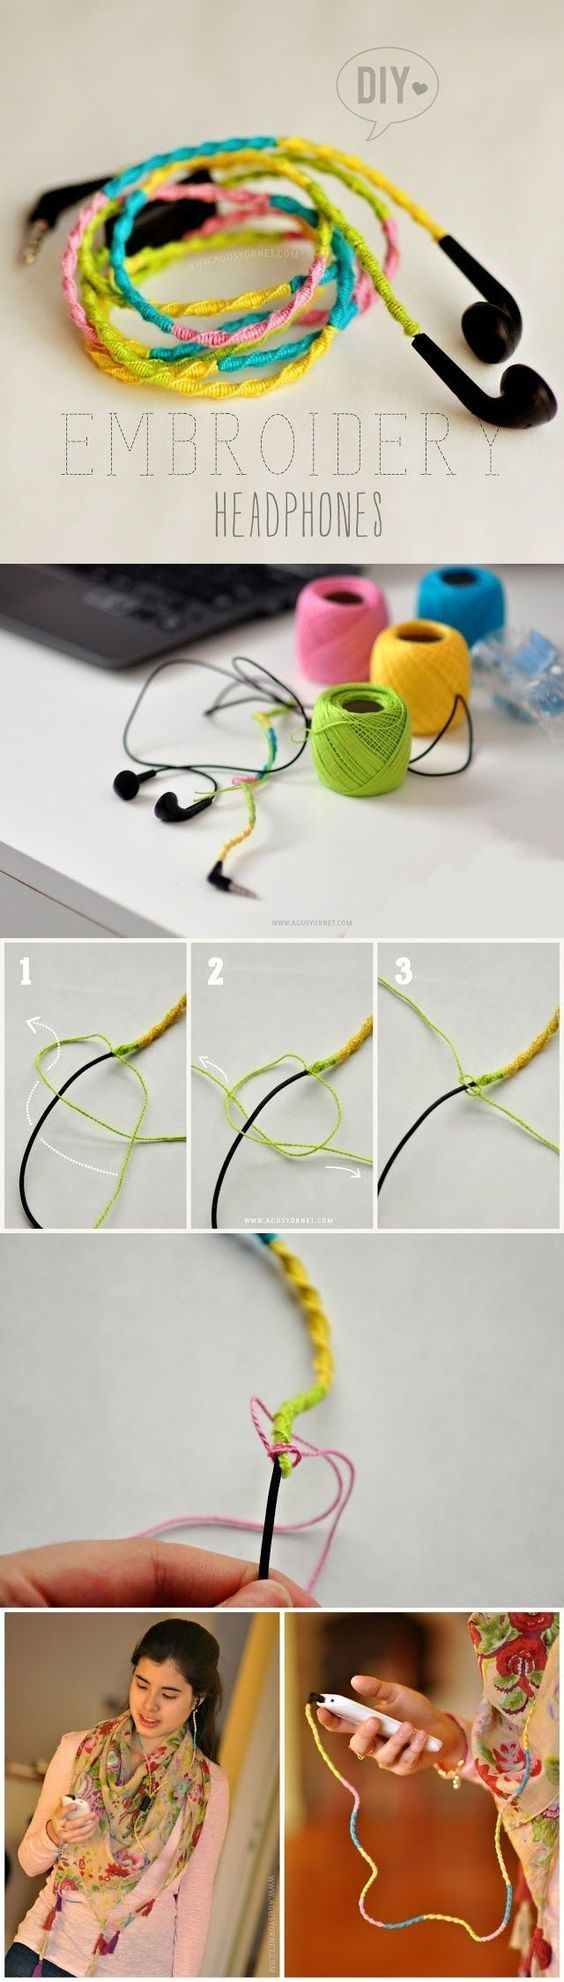 Teen Crafts Ideas and DIY Projects for Teens and Tweens - DIY Embroidery Headphones fun project for teens: